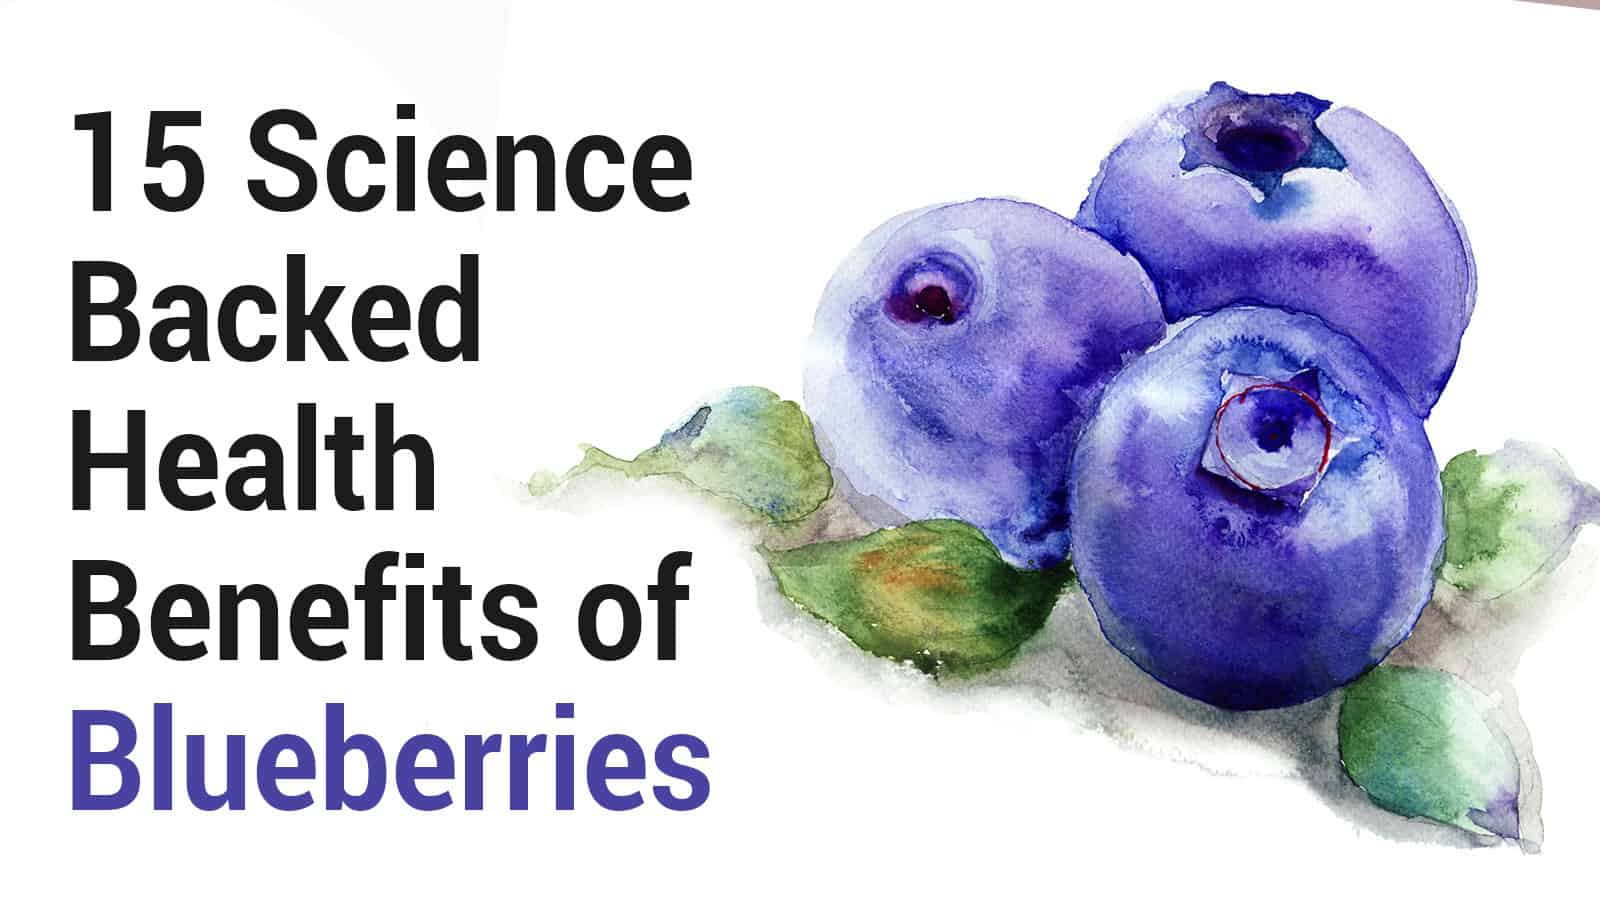 15 Science Backed Health Benefits of Blueberries